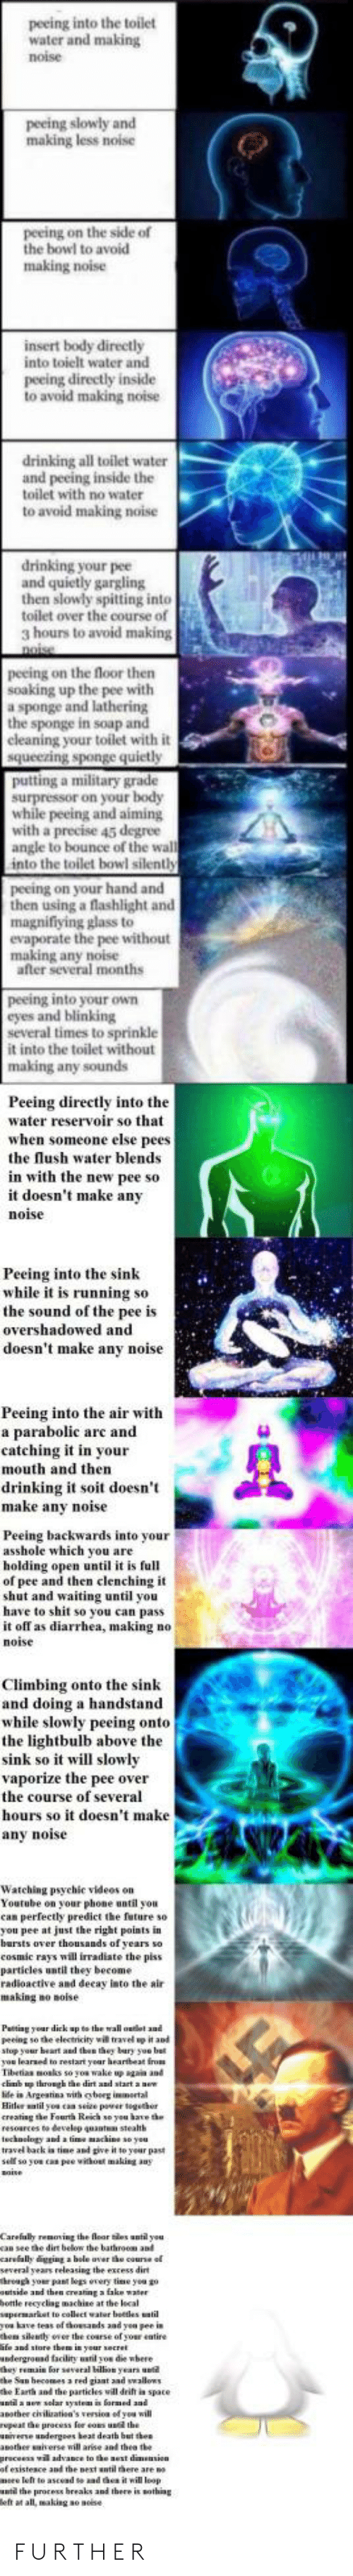 Military Grade: peeing into the toilet  water and making  noise  peeing slowly and  making less noise  peeing on the side of  the bowl to avoid  making noise  insert body directly  into toielt water and  peeing directly inside  to avoid making noise  drinking all toilet water  and peeing inside the  toilet with no water  to avoid making noise  drinking your pee  and quietly gargling  then slowly spitting into  toilet over the course of  3 hours to avoid making  peeing on the floor then  soaking up the pee with  a sponge and lathering  the sponge in soap and  cleaning your toilet with it  a military grade  while peeing and aiming  with a precise 45 degree  angle to bounce of the wal  into the toilet bowl silenth  peeing on your hand and  then using a flashlight and  magnifiying glass to  evaporate the pee without  making any noise  after several months  peeing into your oWn  eyes and blinking  several times to sprinkle  it into the toilet without  making any sounds  Peeing directly into the  water reservoir so that  when someone else pees  the lush water blends  in with the new pee so  it doesn't make any  noi  Peeing into the sink  while it is running so  the sound of the pee is  overshadowed and  doesn't make any noise  Peeing into the air with  a parabolic arc and  catching it in your  mouth and then  drinking t st doesn't  make anv noise  Peeing backwards into your  asshole which you are  holding open until it is full  of pee and then clenching it  shut and waiting until you  have to shit so you can pass  noise  Climbing onto the sink  and doing a handstand  while slowly peeing onto  the lightbulb above the  sink so it will slo  vaporize the pee over  the course of several  hours so it doesn't make  any noise  Watching psyehic videes on  Youtube on your phone until you  can perfectly predict the feture so  you pee at just the right points in  barsts over thousands of  cosmic rays will irradiate the piss  particles until they become  radioactive and decay isto the